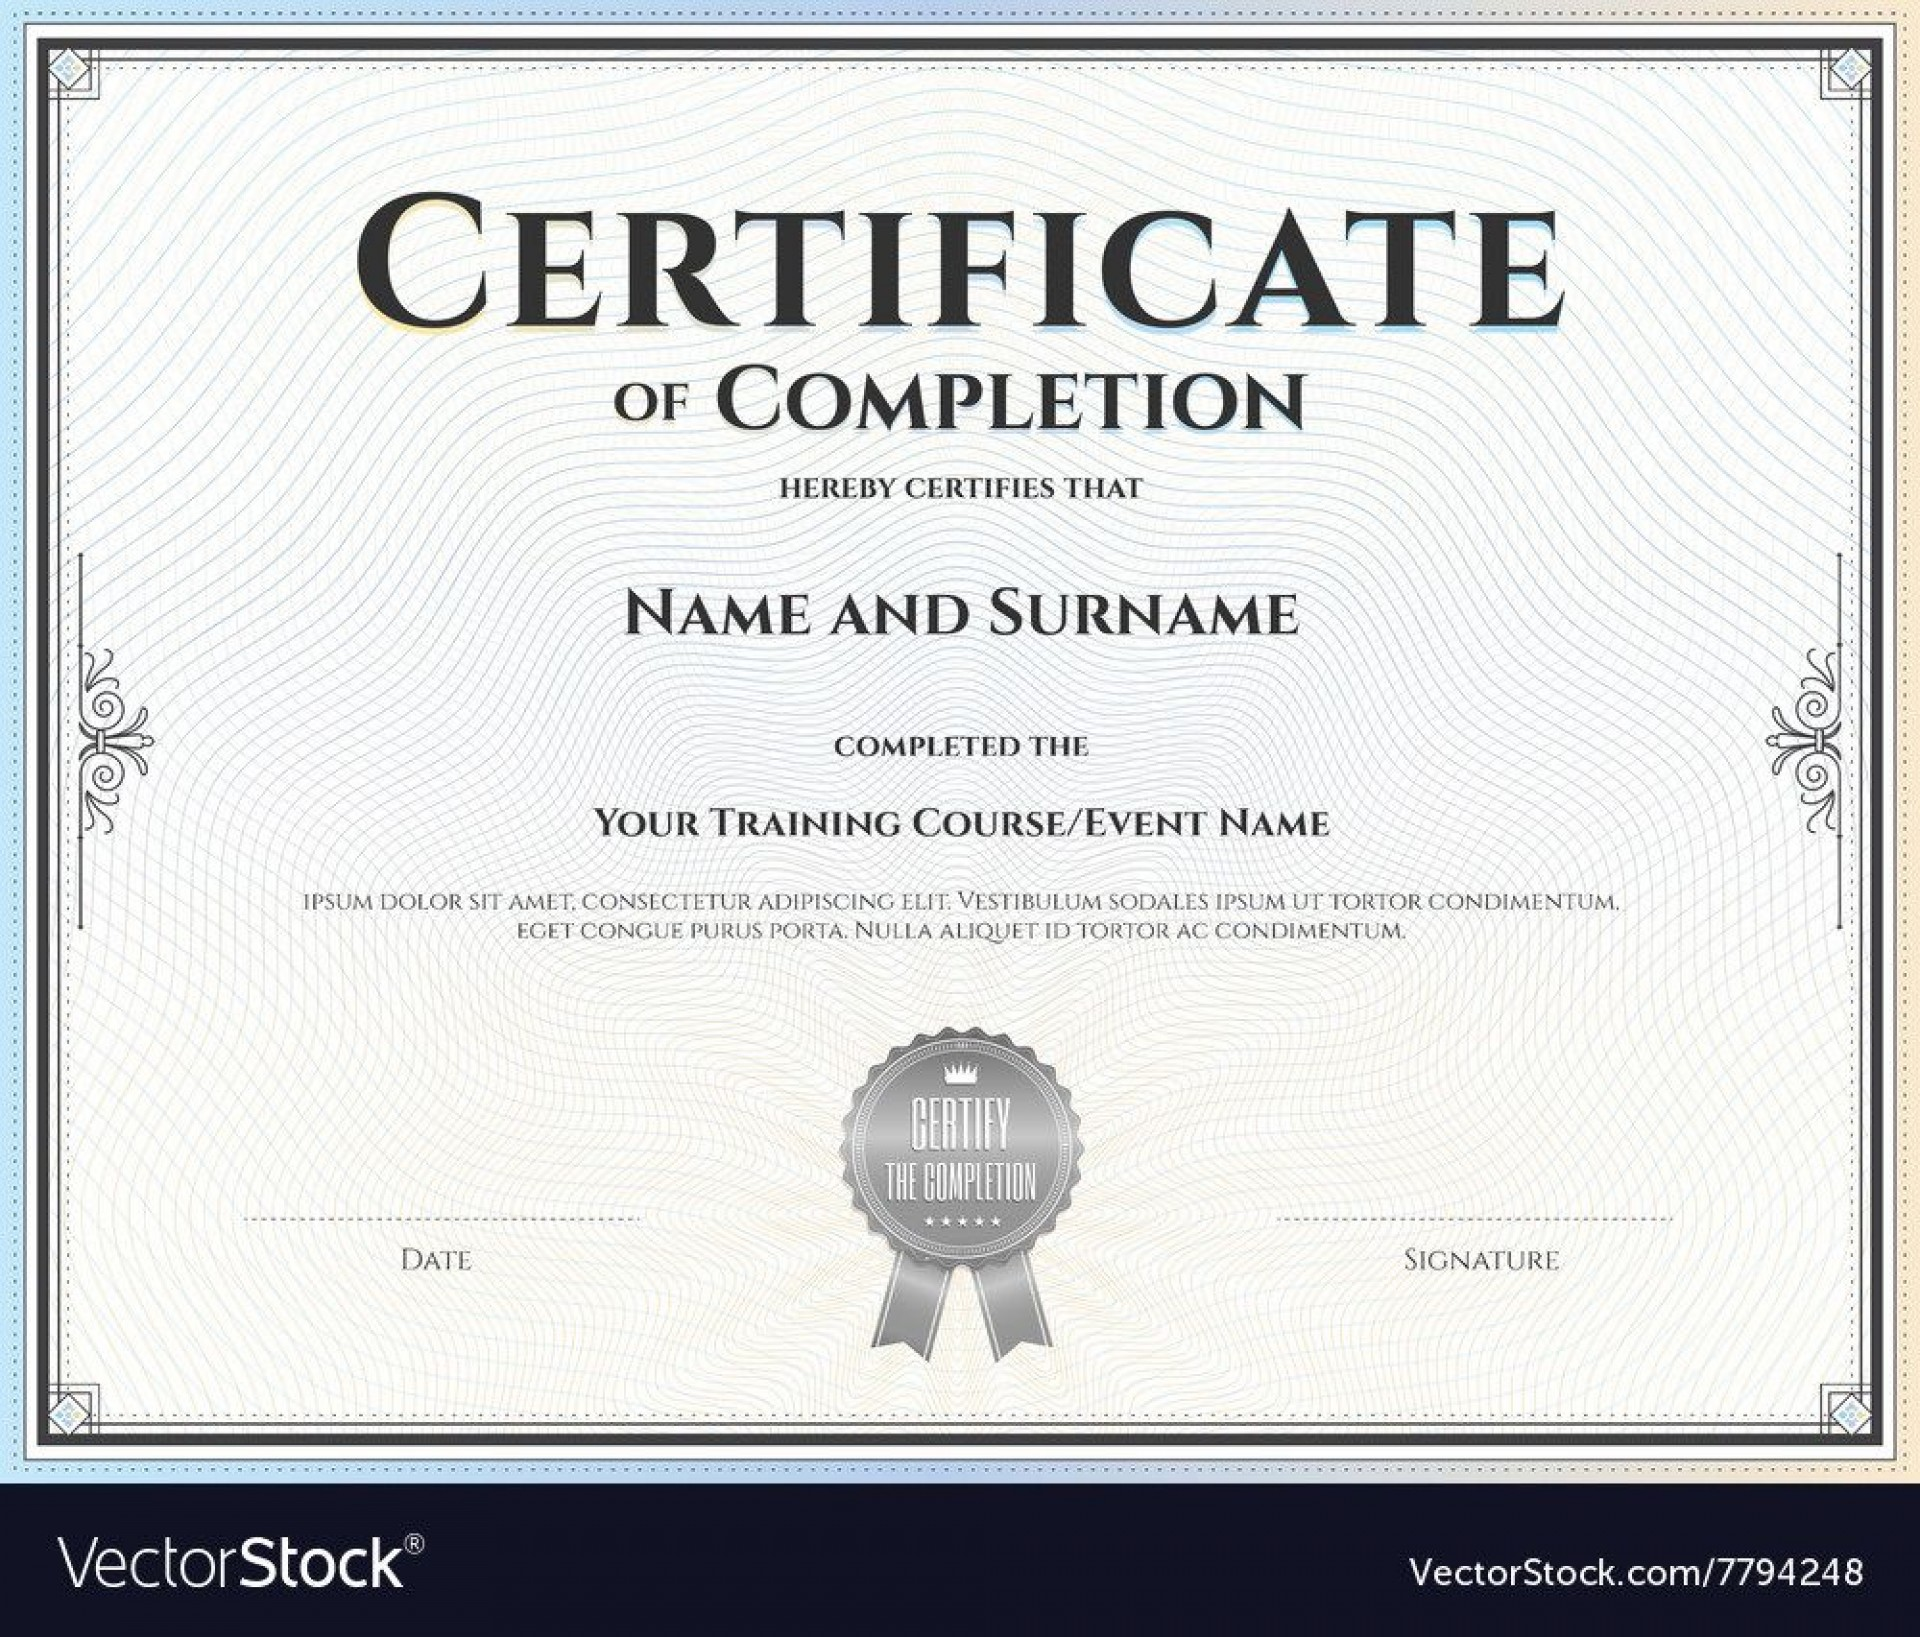 007 Fascinating Free Certificate Of Completion Template Image  Blank Printable Download Word Pdf1920